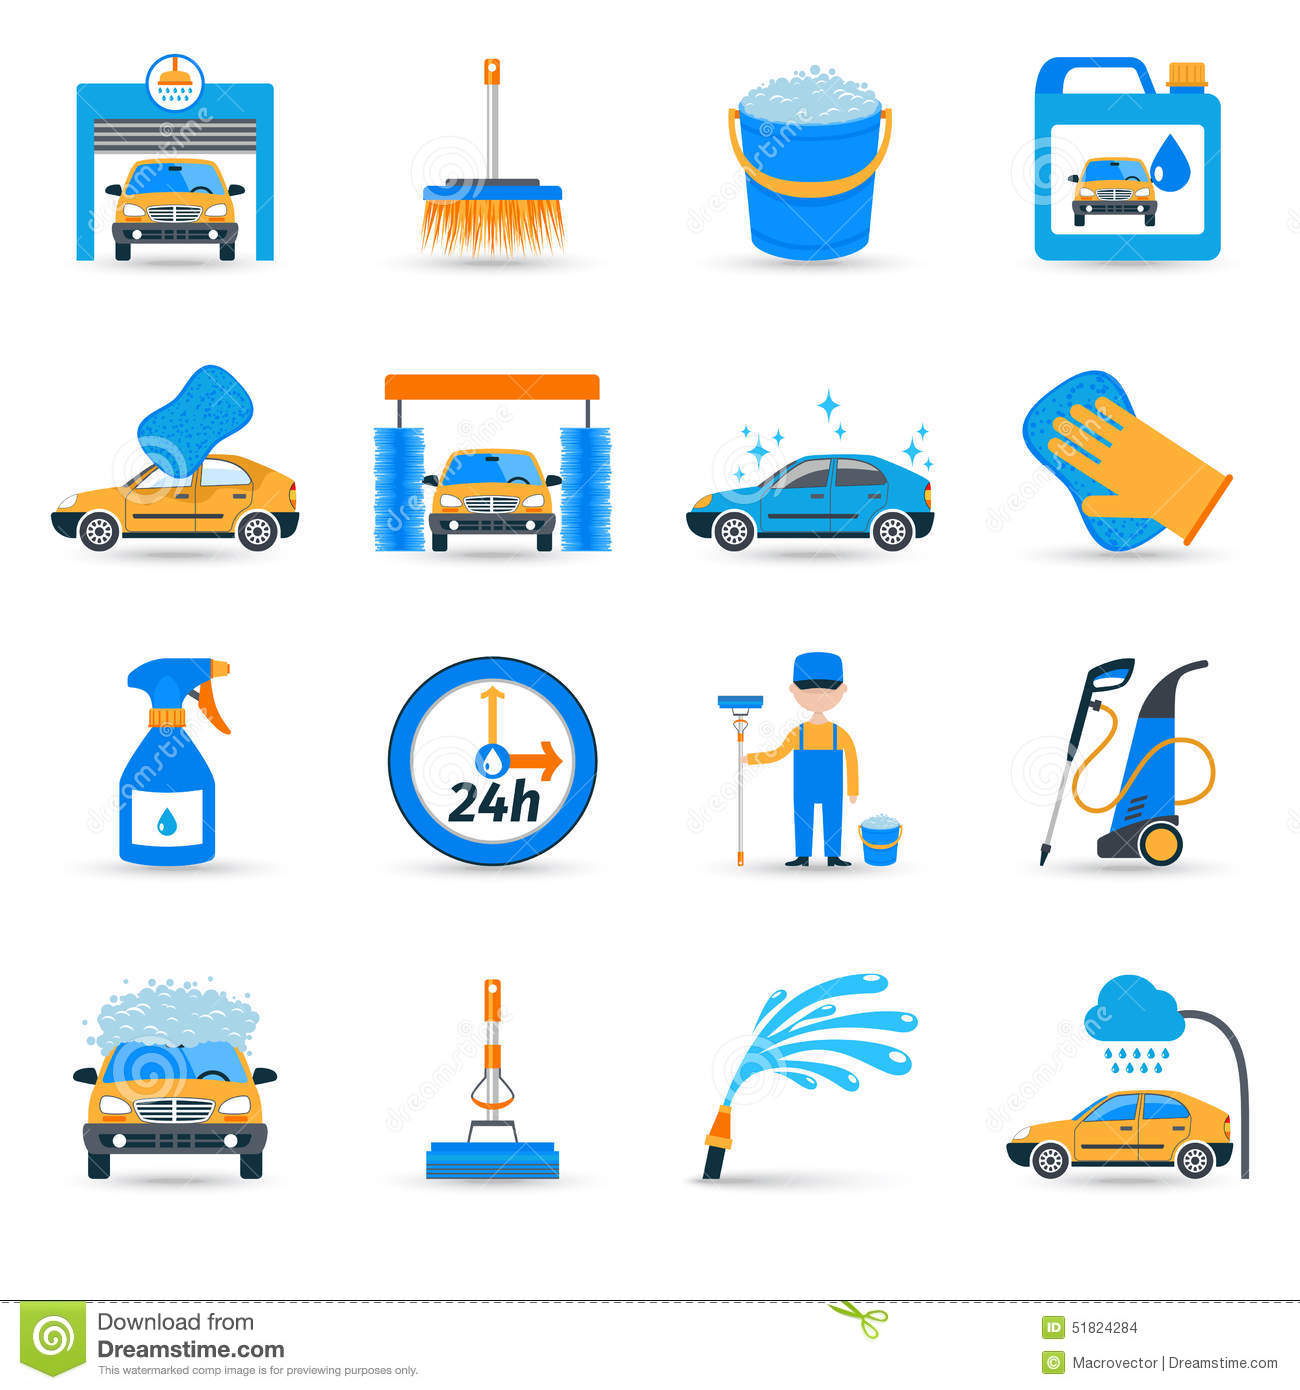 car wash service icons set stock vector image 51824284. Black Bedroom Furniture Sets. Home Design Ideas